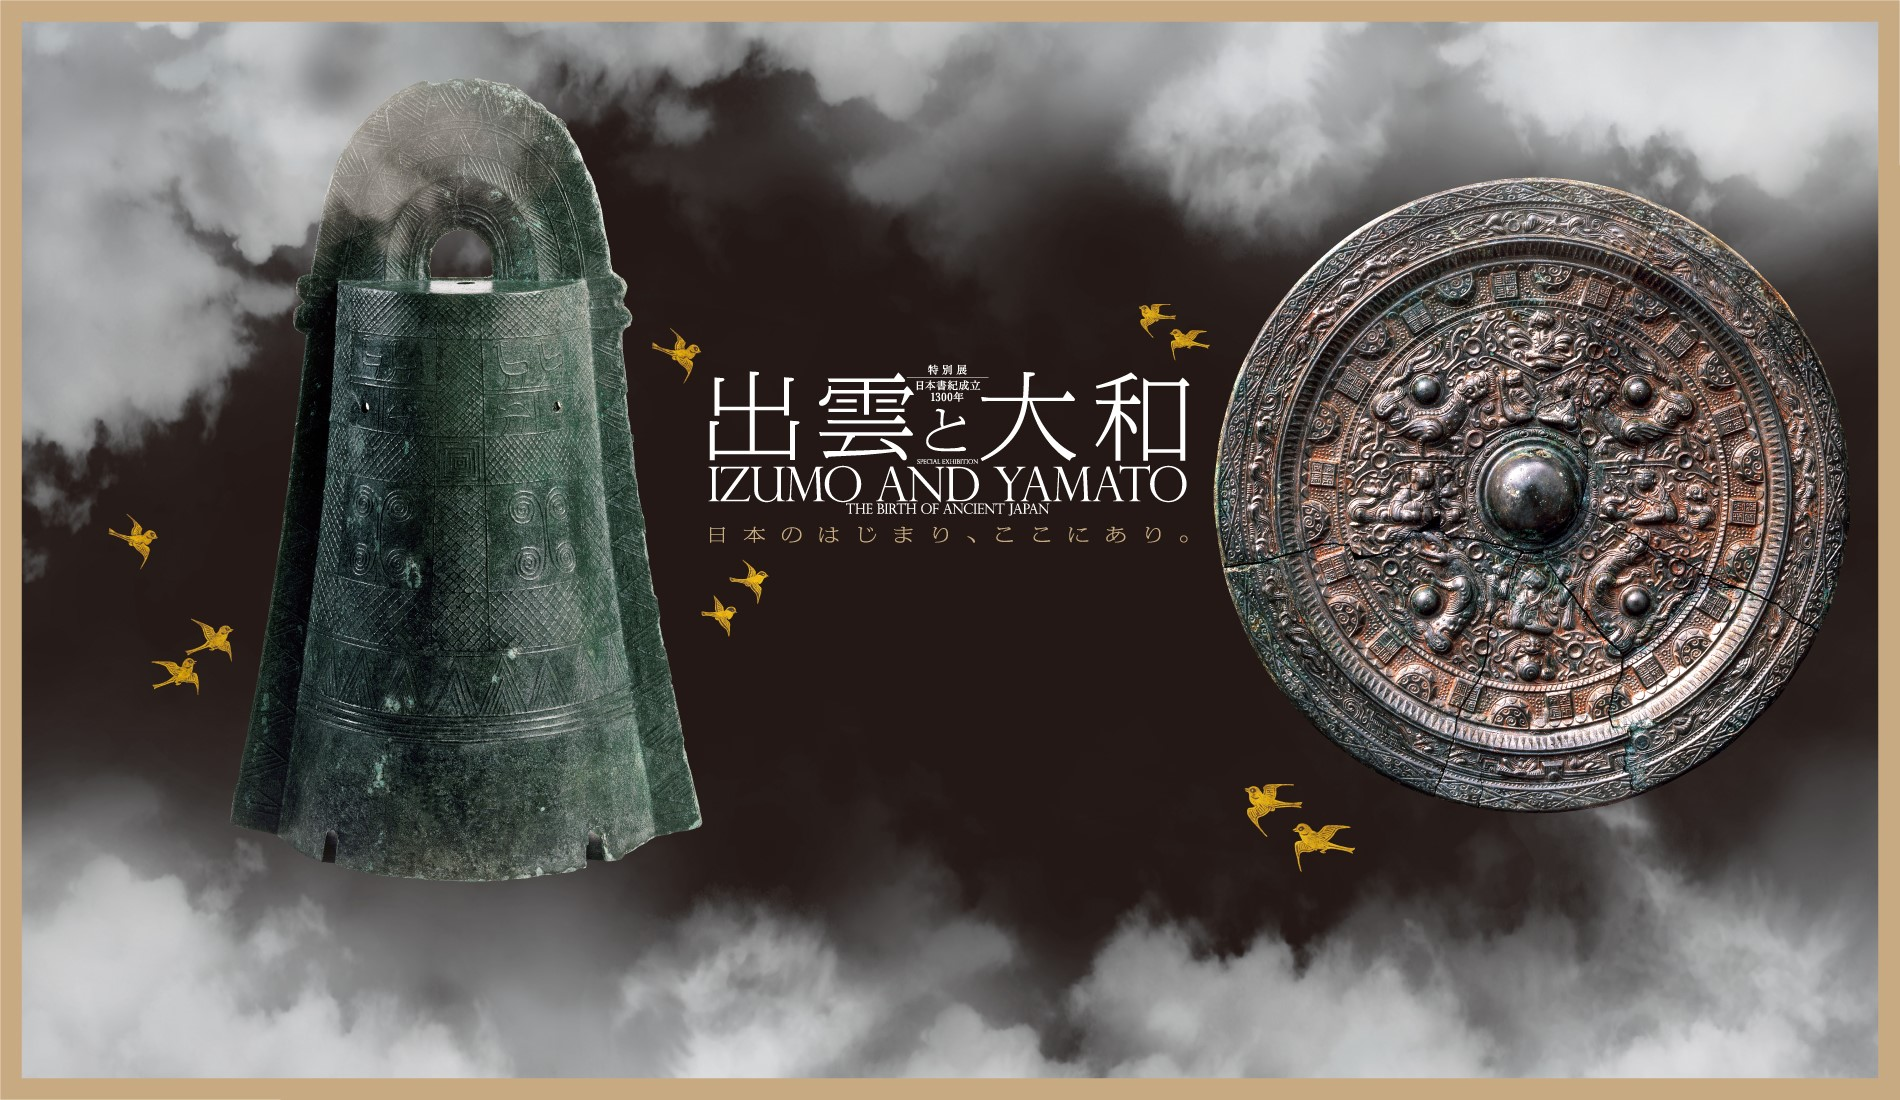 Izumo and Yamato: The Birth of Ancient Japan